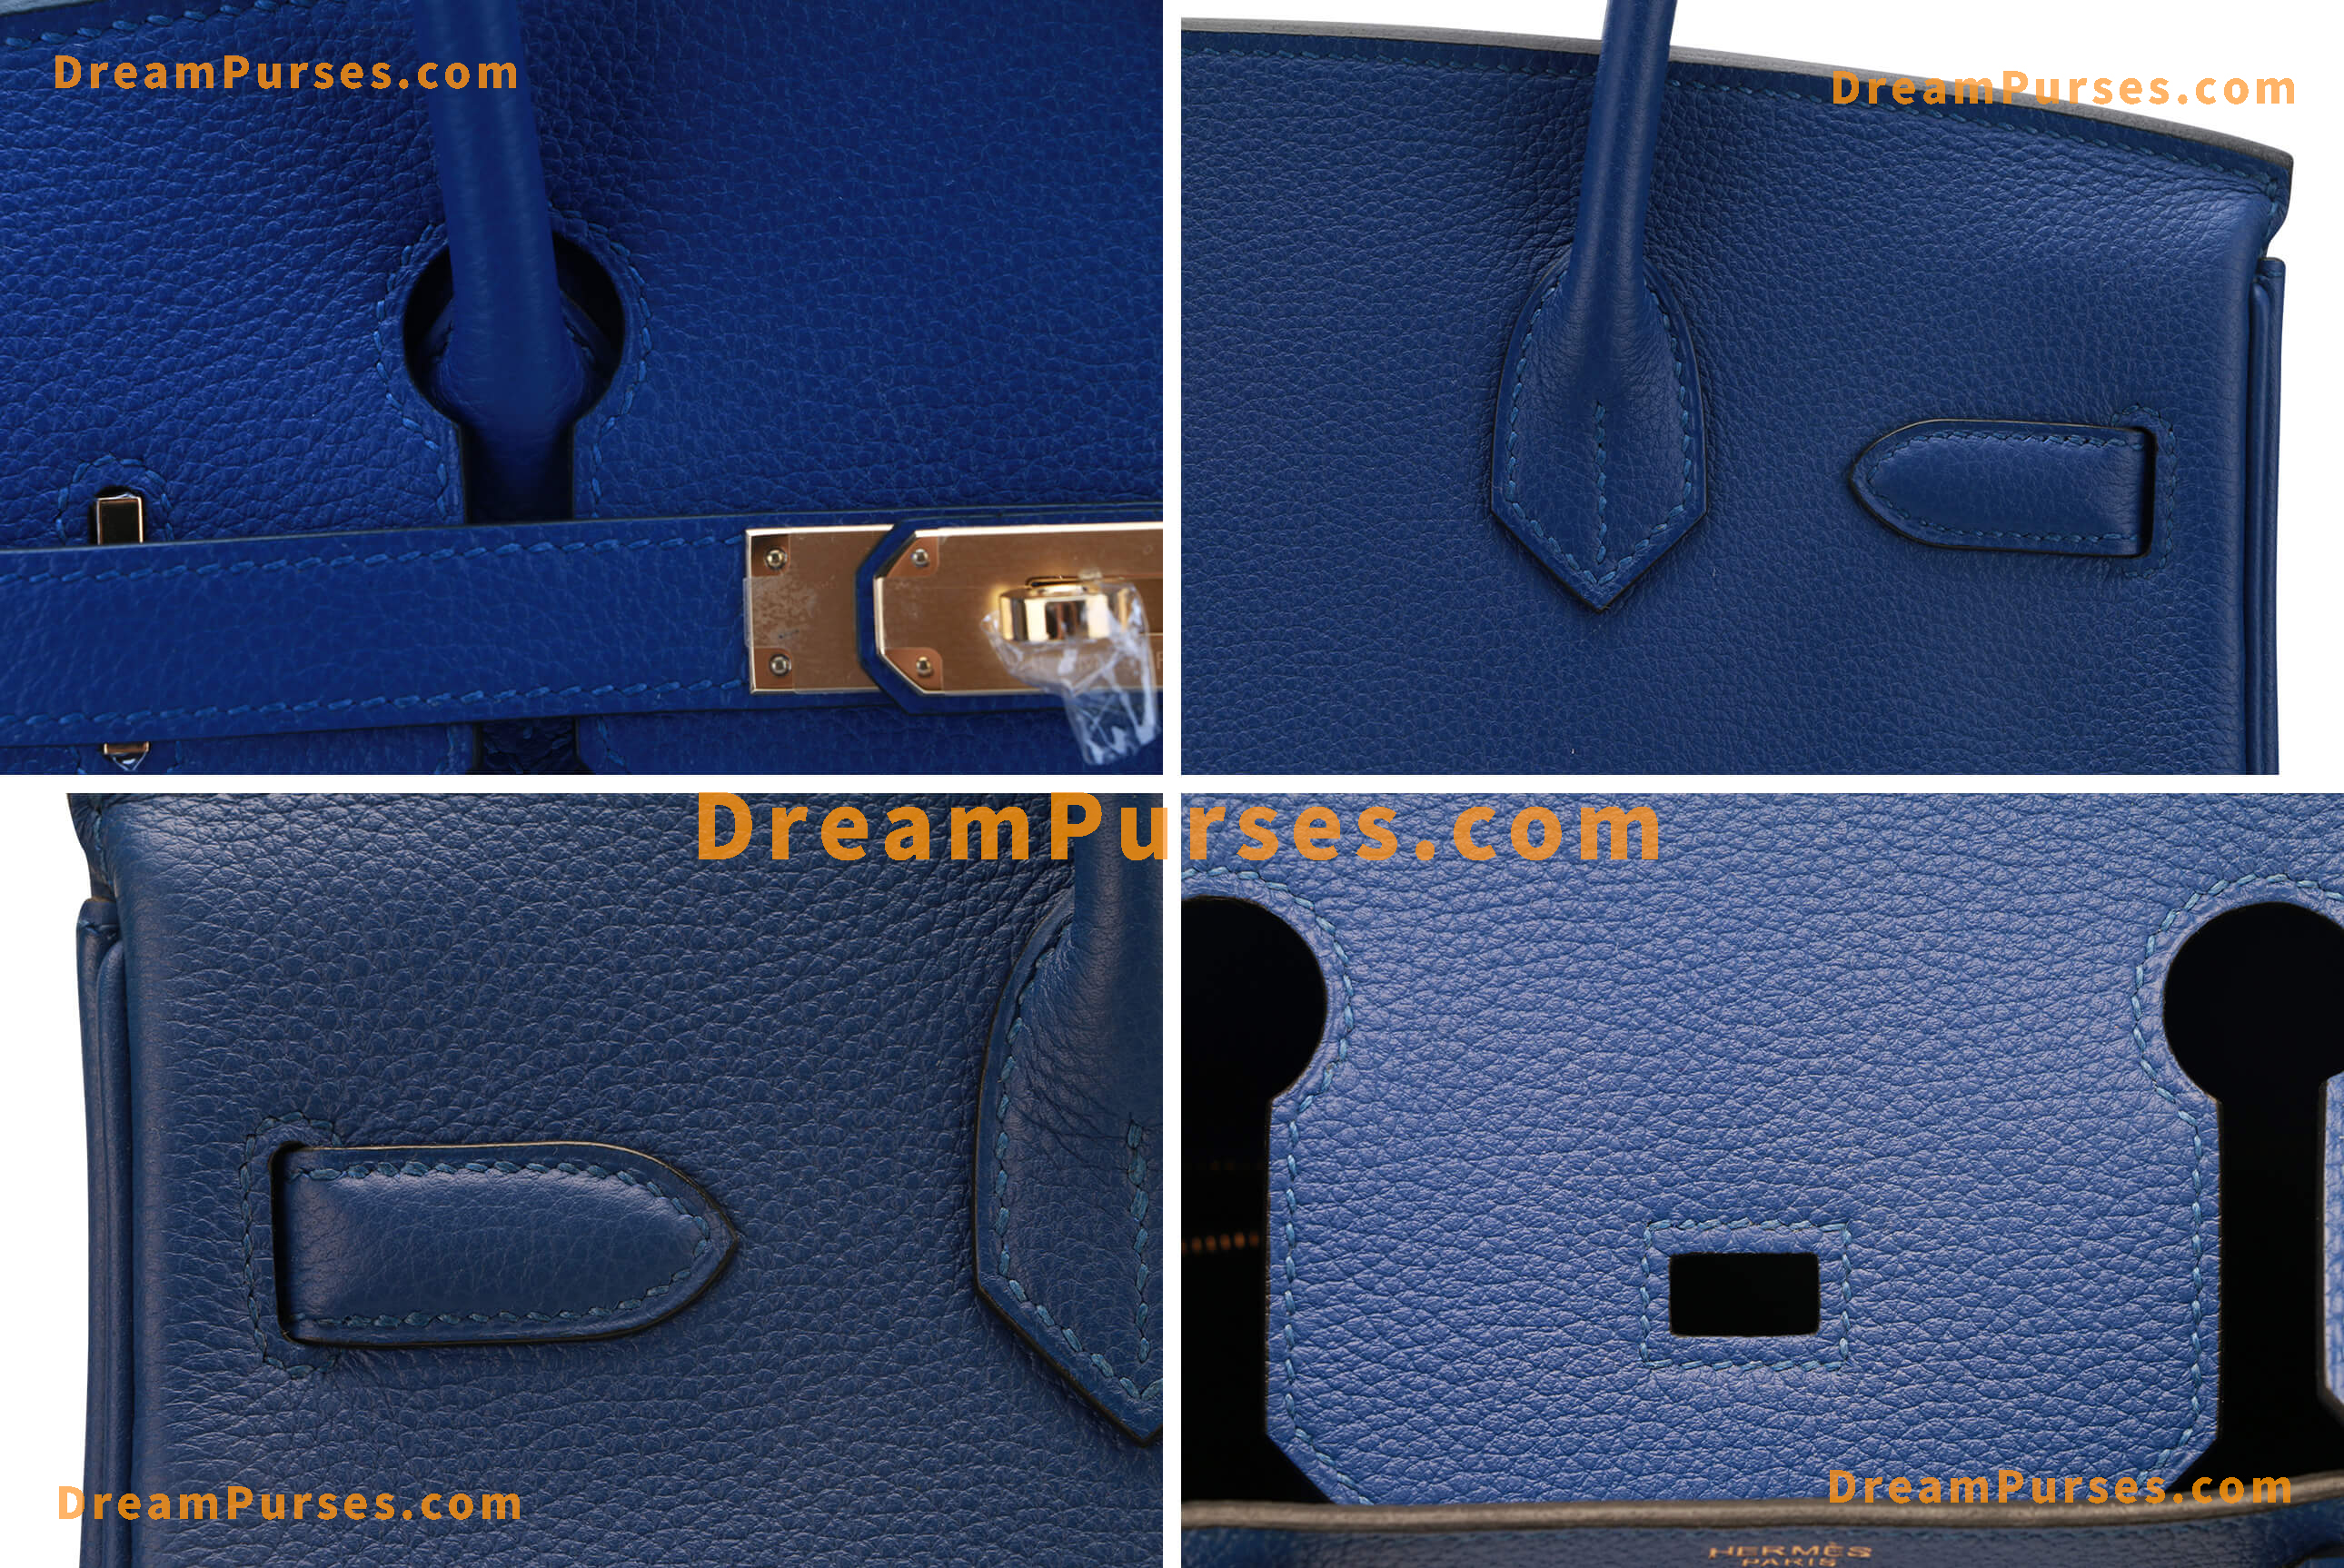 Togo leather from the same TANNERY as real Hermes Birkin uses